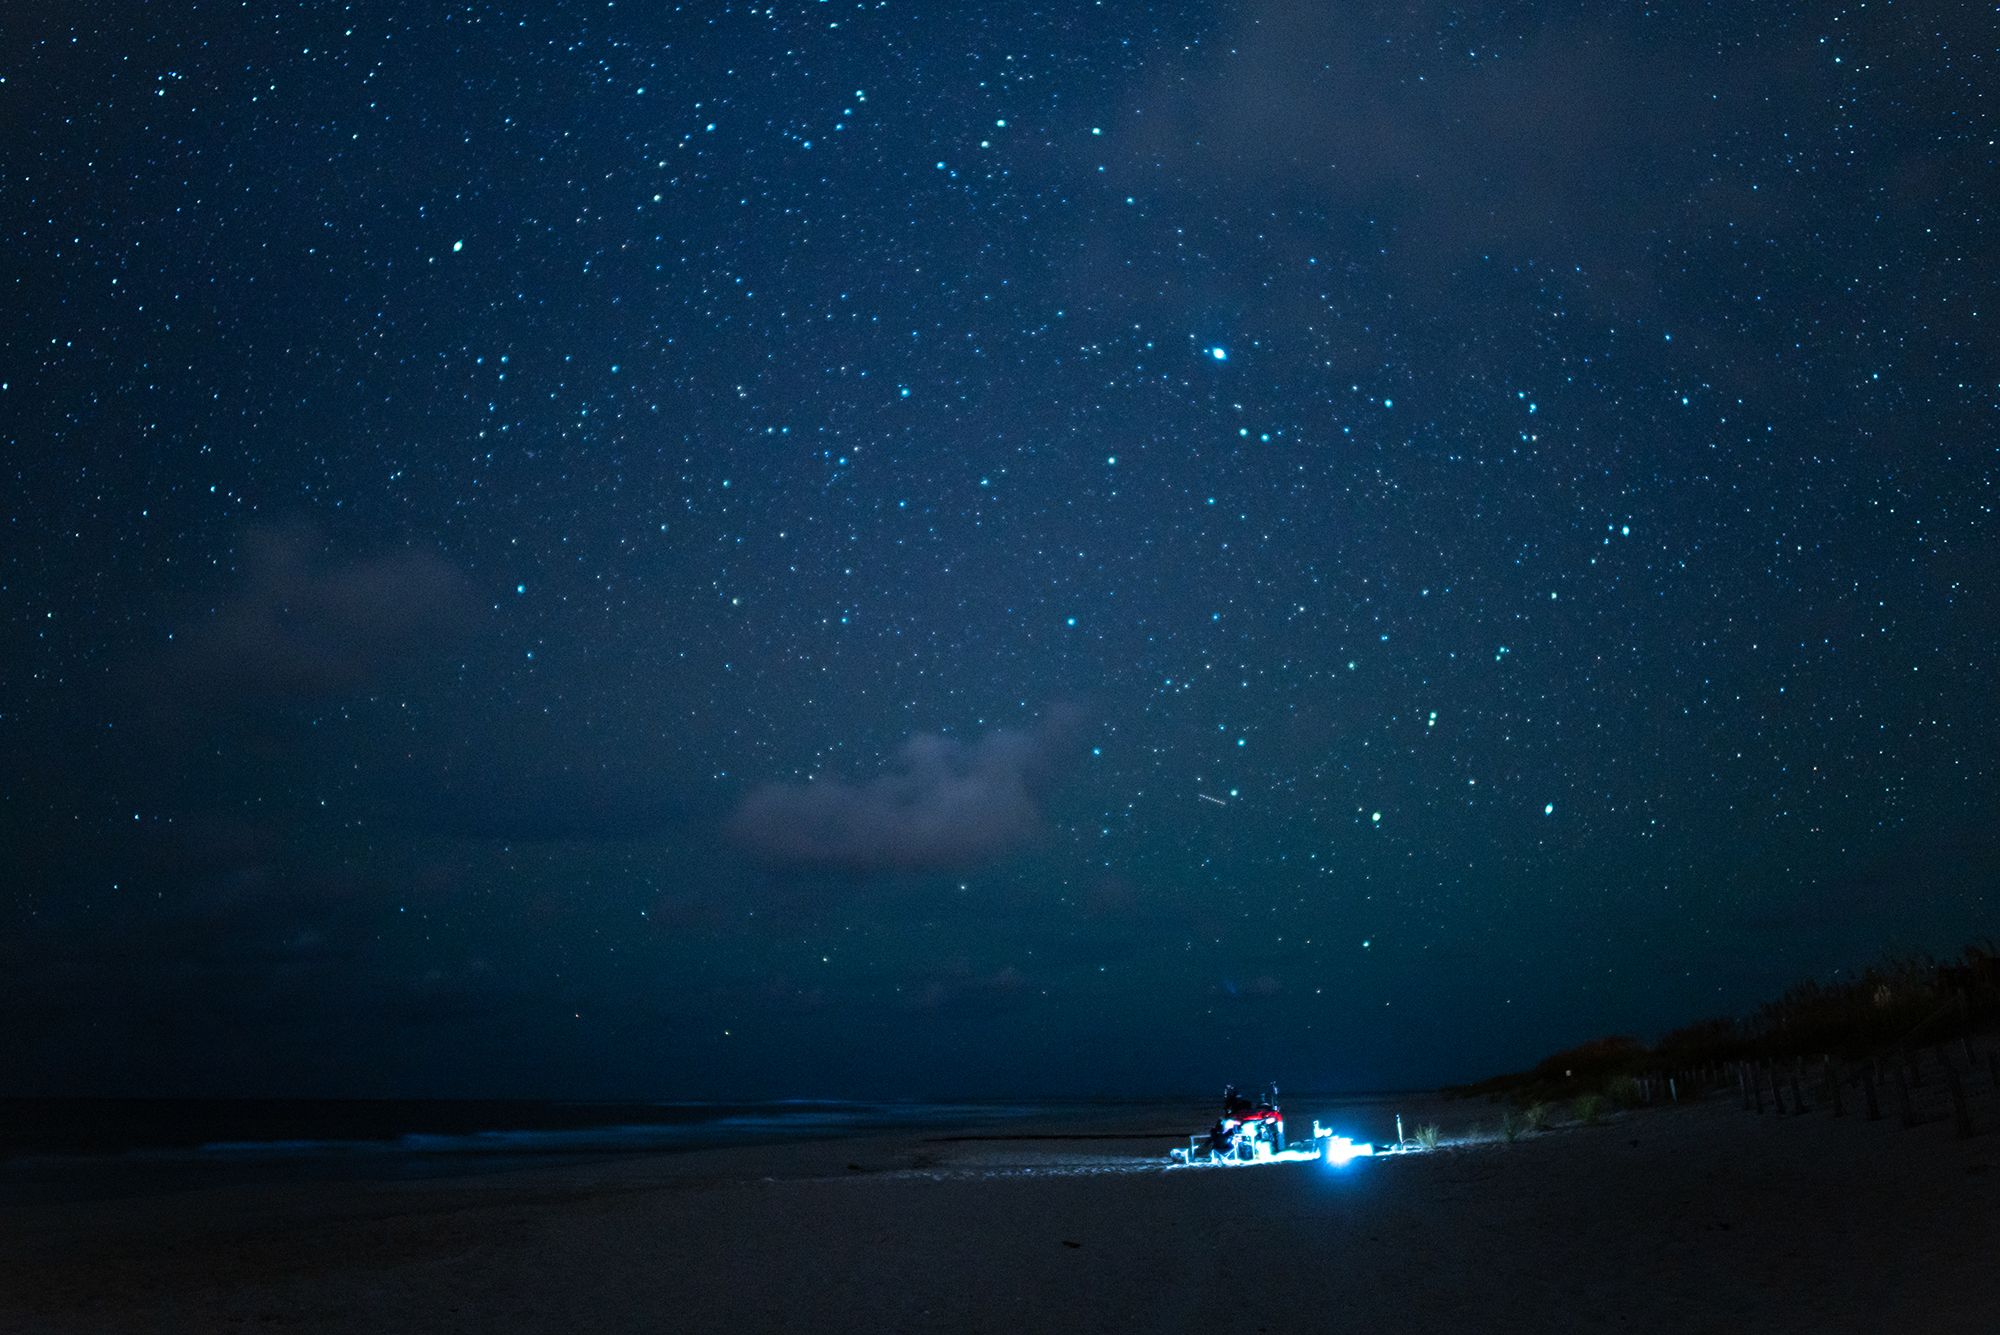 a wide shot of the research team on the beach at night